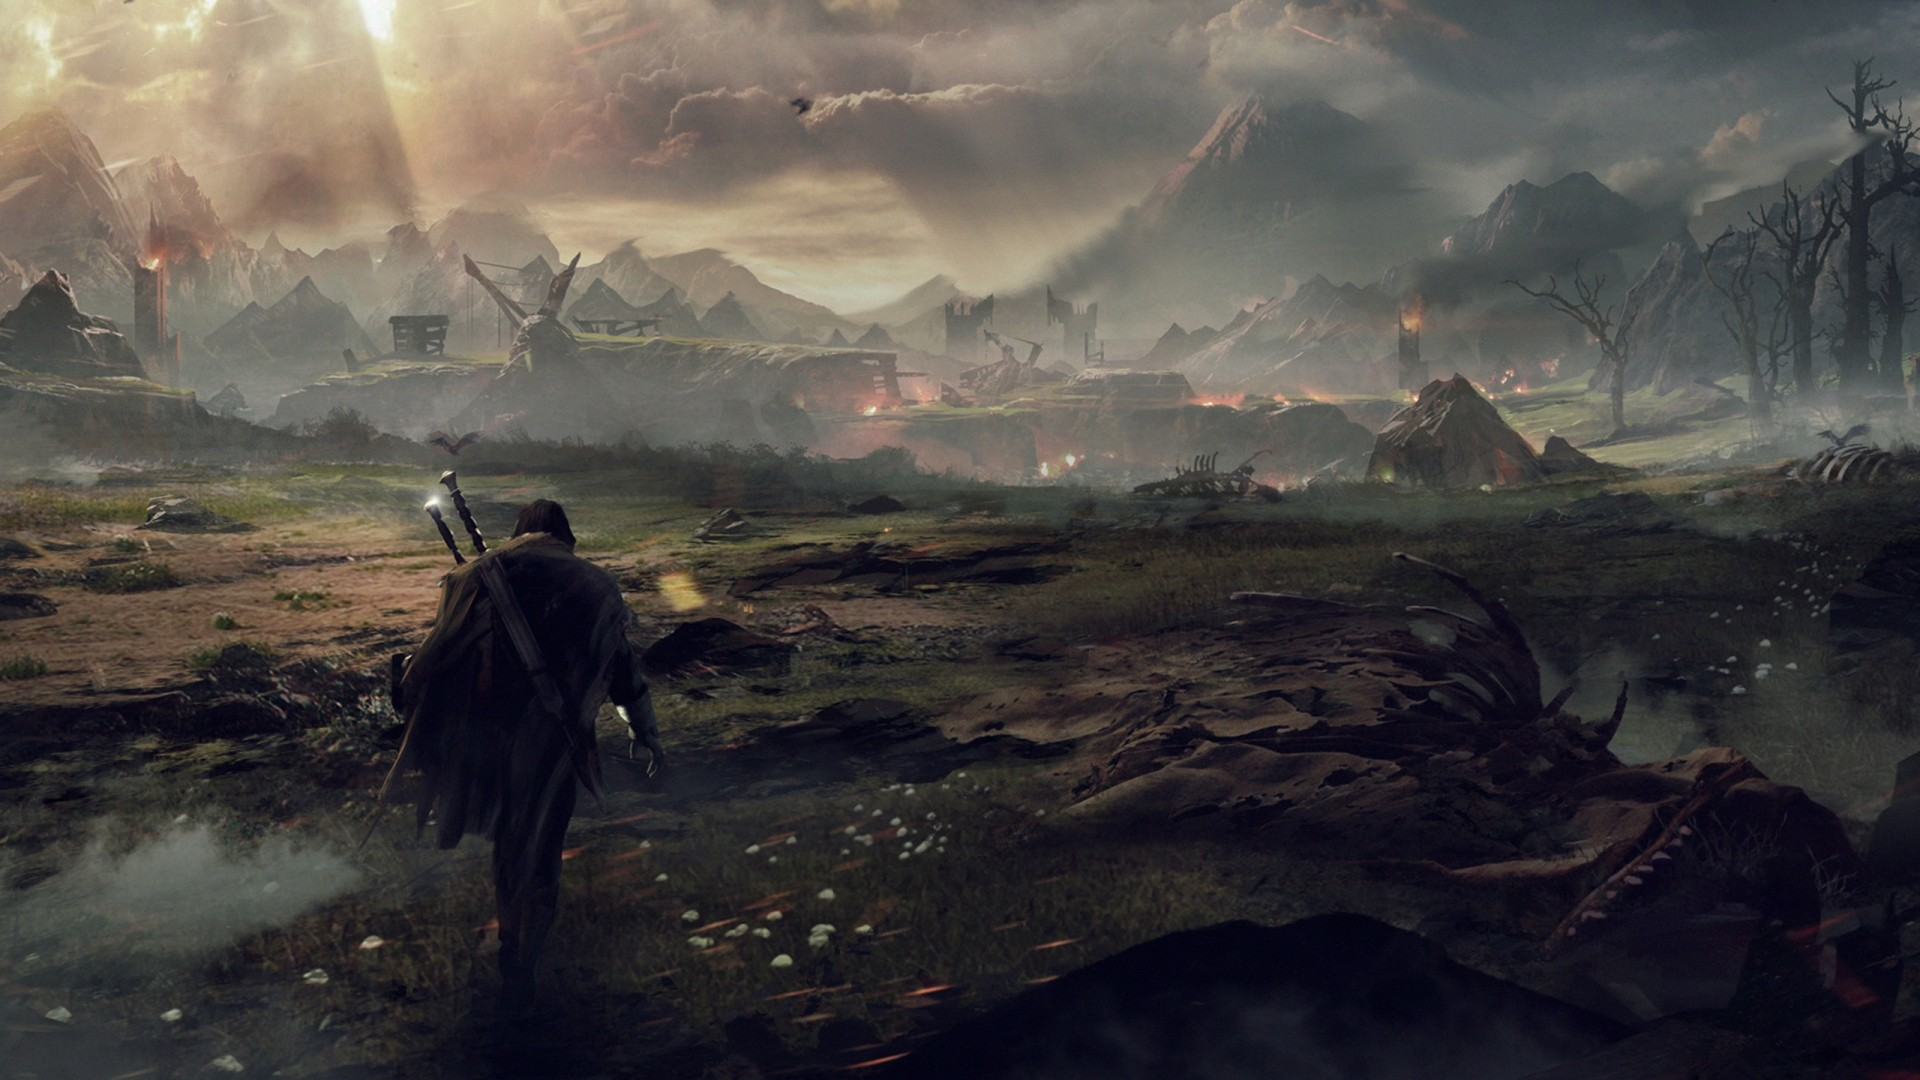 Wallpaper middle-earth shadow of mordor, the lord of the rings,  talion